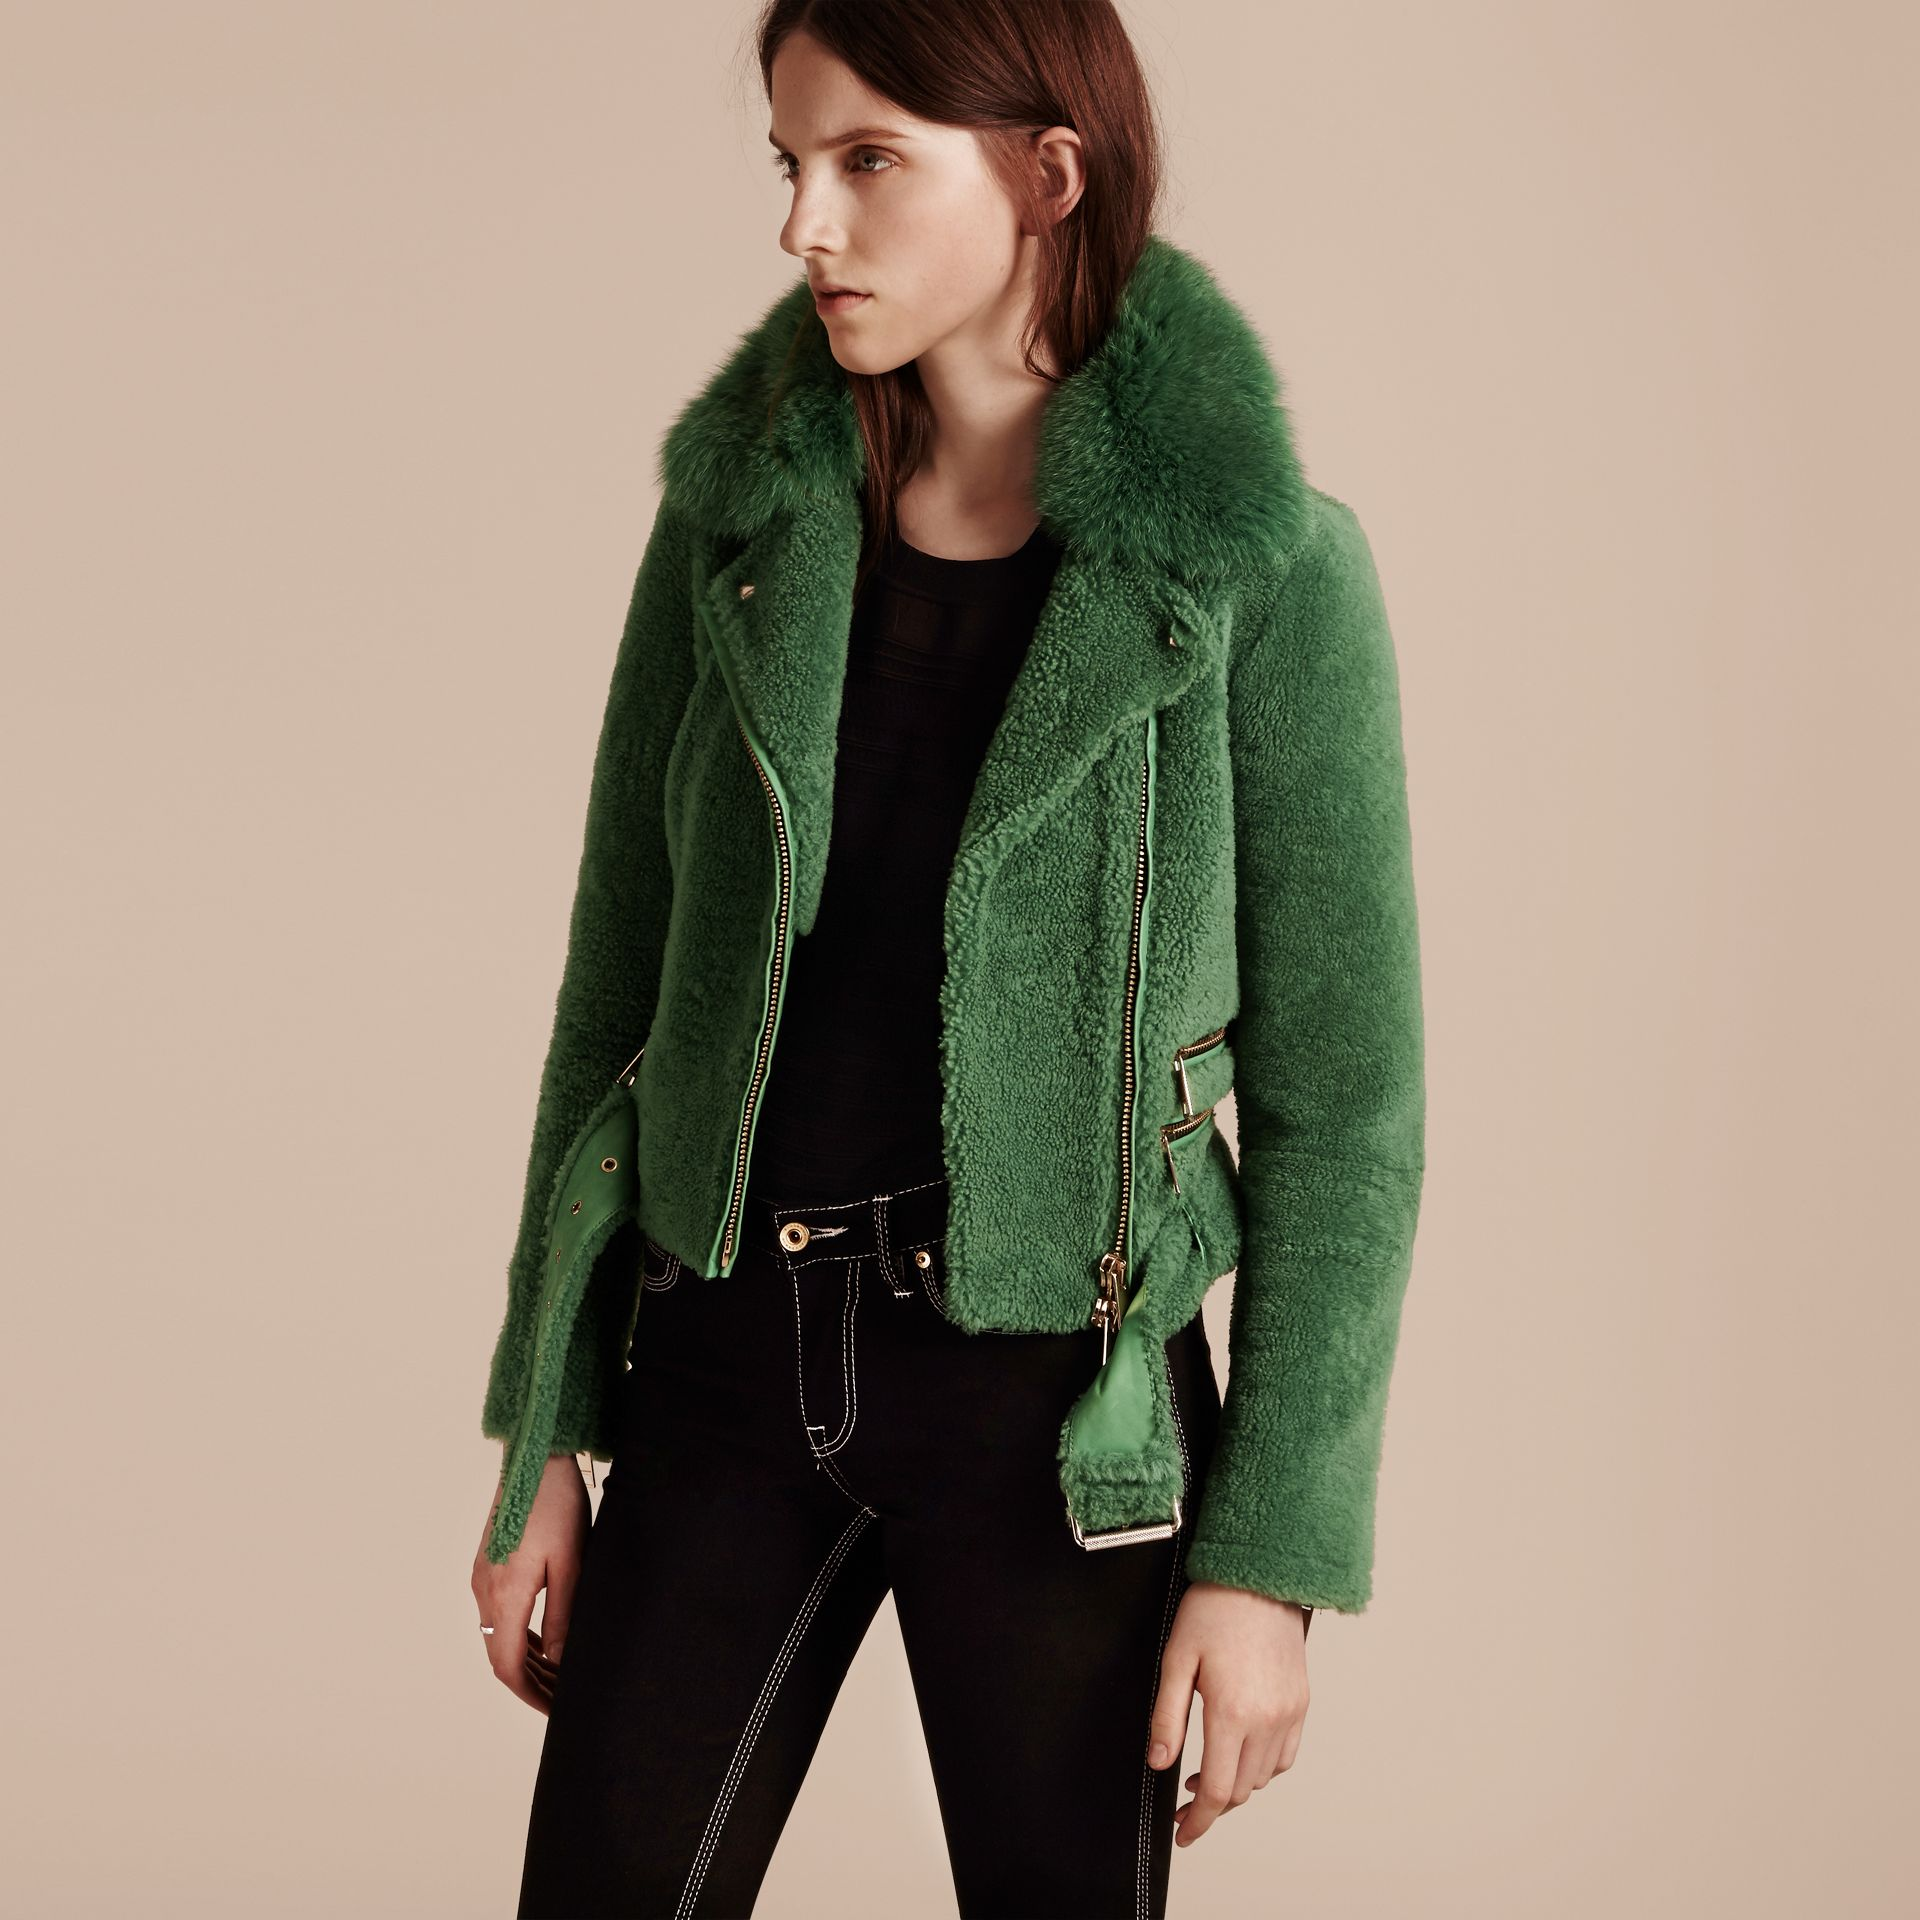 Pigment green Shearling Biker Jacket with Fox Fur Collar Pigment Green - gallery image 7